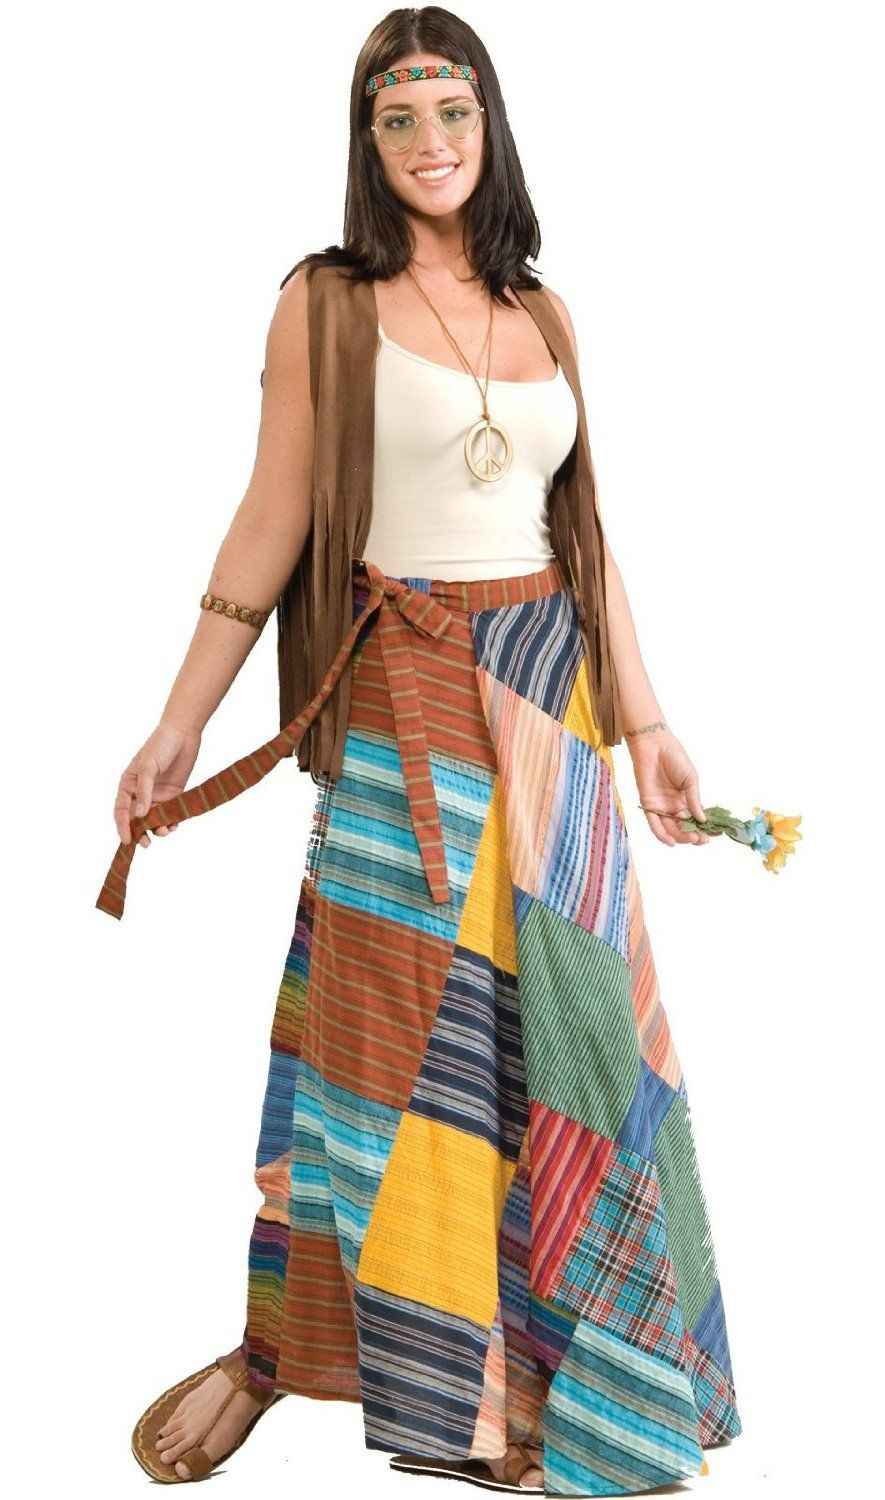 hippies | Clothes for hippies have become part of our ...